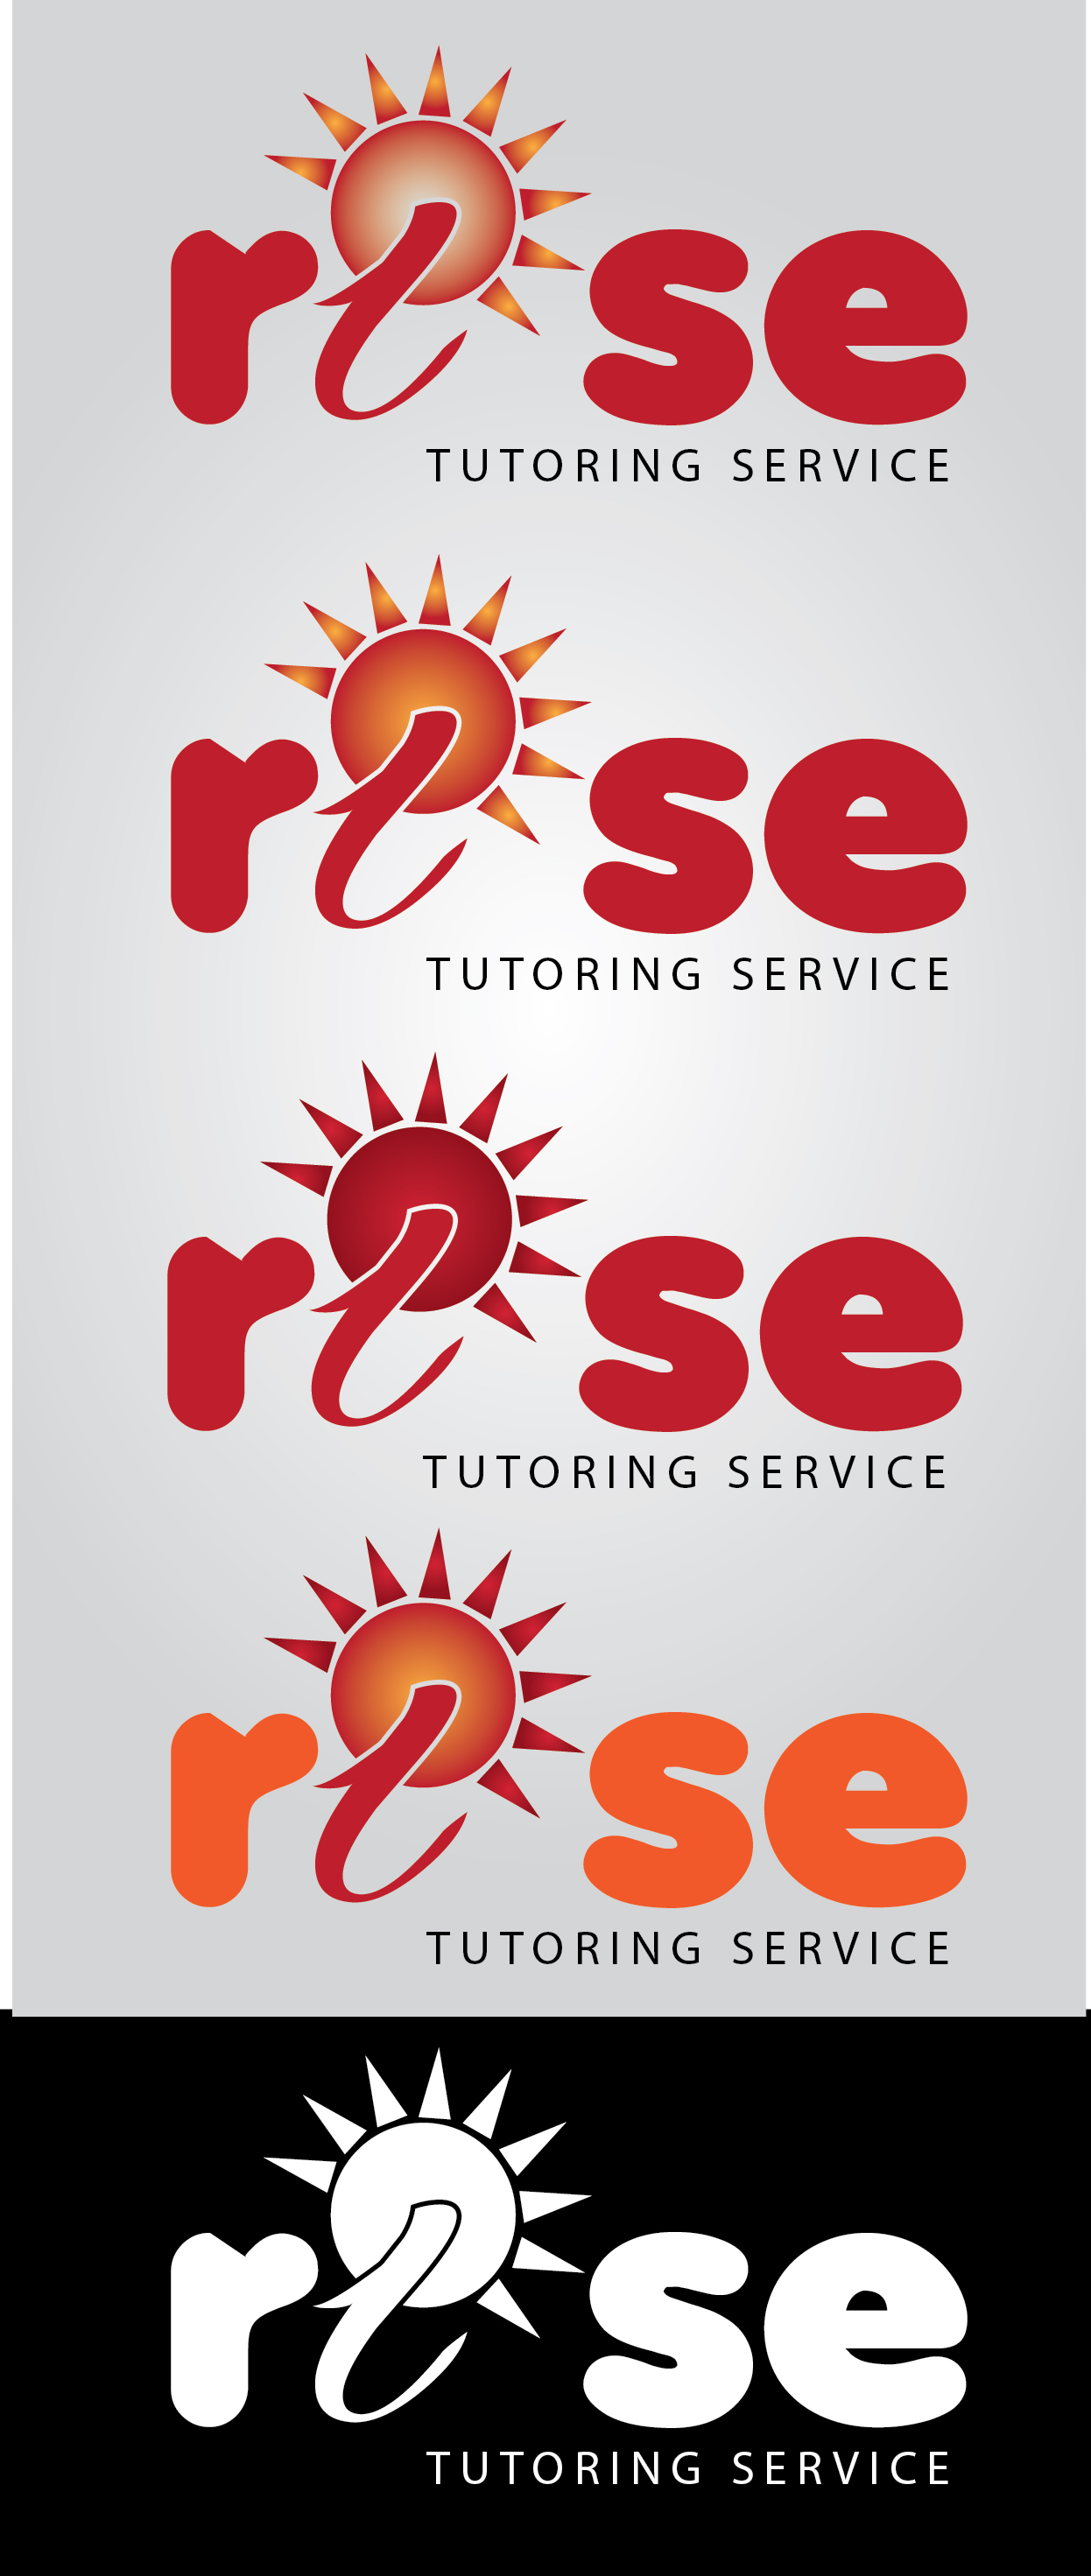 Logo Design by mediaproductionart - Entry No. 139 in the Logo Design Contest Imaginative Logo Design for Rise Tutoring Service.